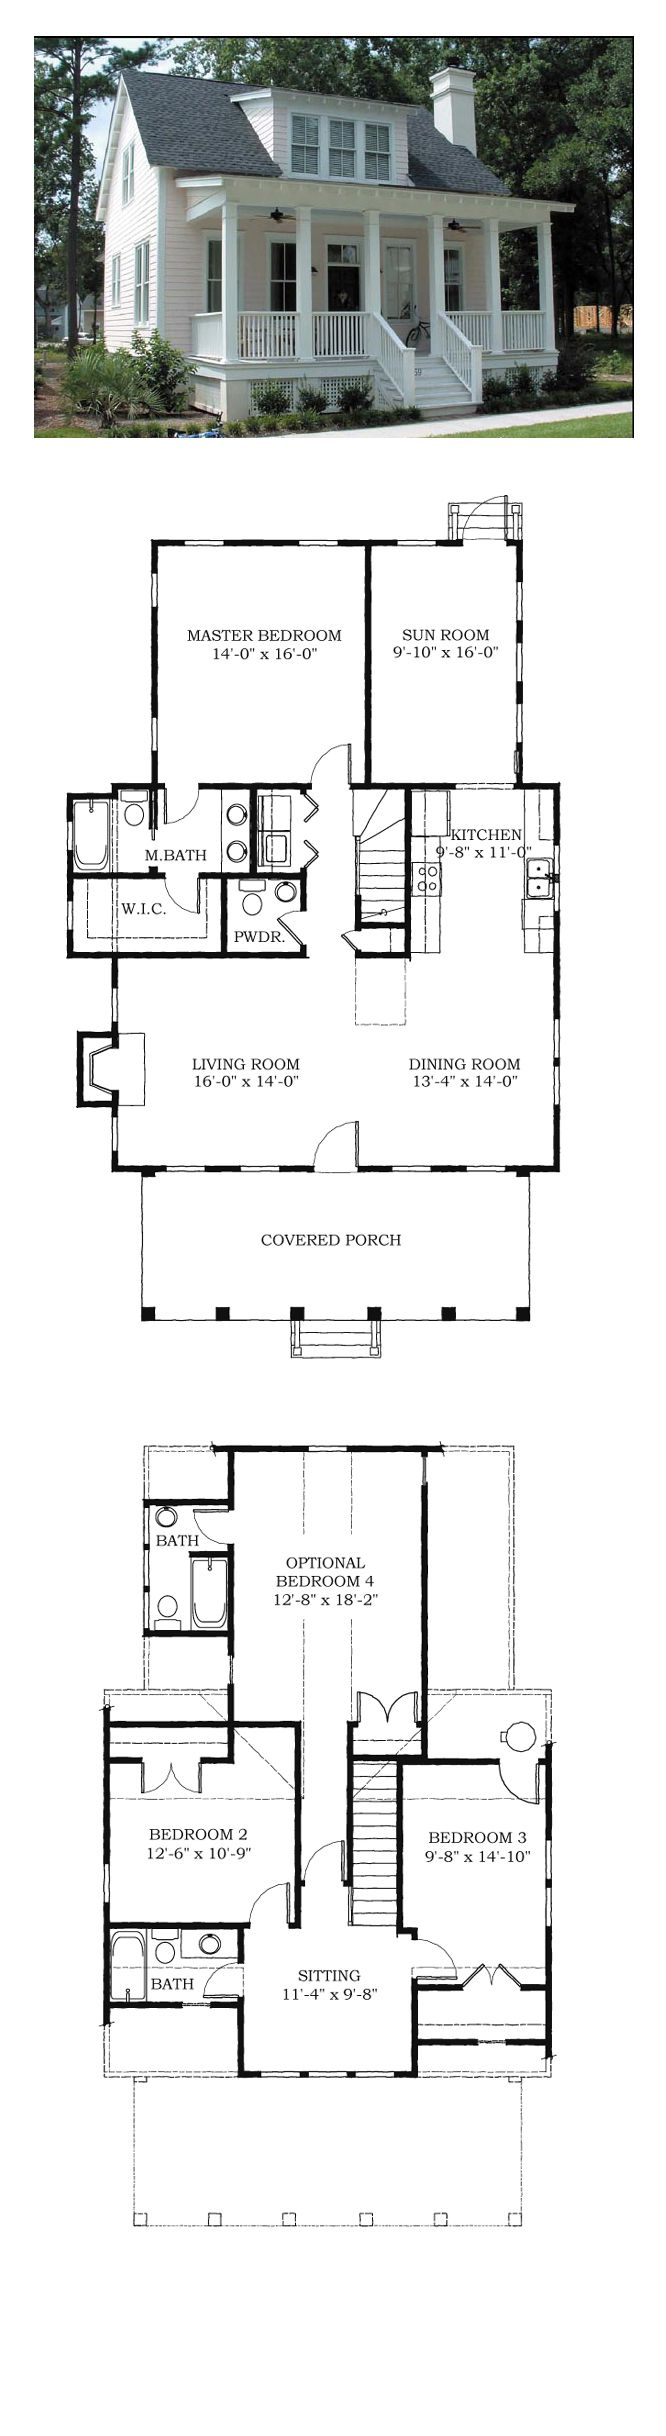 1000+ ideas about Small House Plans on Pinterest House plans ... - ^